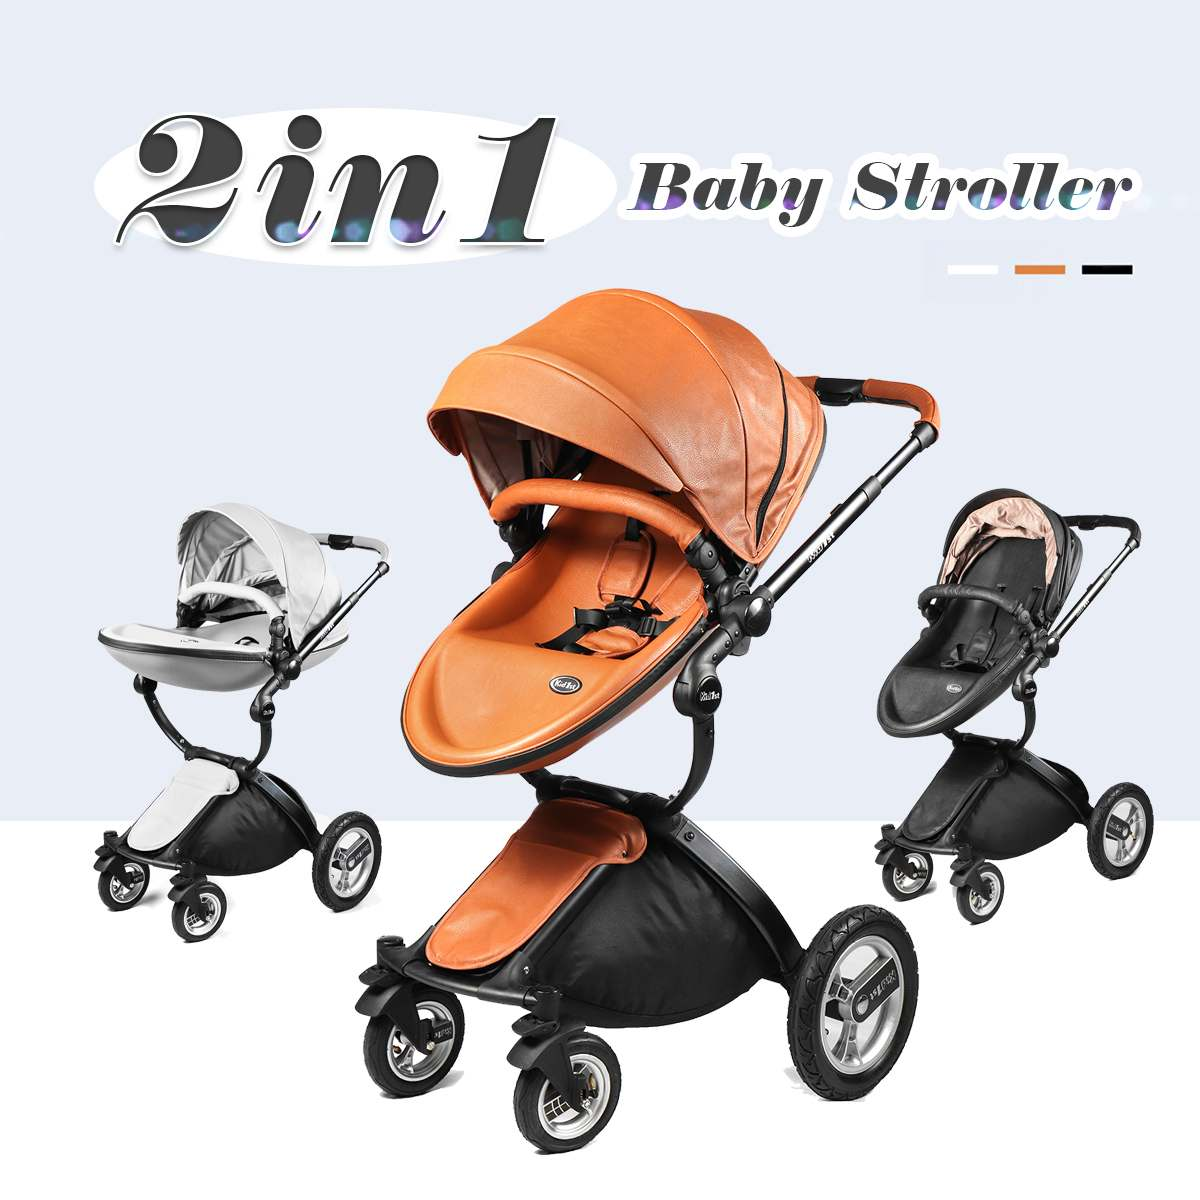 Bioby 2 in 1 Trolley Multifunctional  Baby Foldable Stroller   Buggy Pram Kids Child Travel Pushchair Folding Hot NewbornBioby 2 in 1 Trolley Multifunctional  Baby Foldable Stroller   Buggy Pram Kids Child Travel Pushchair Folding Hot Newborn